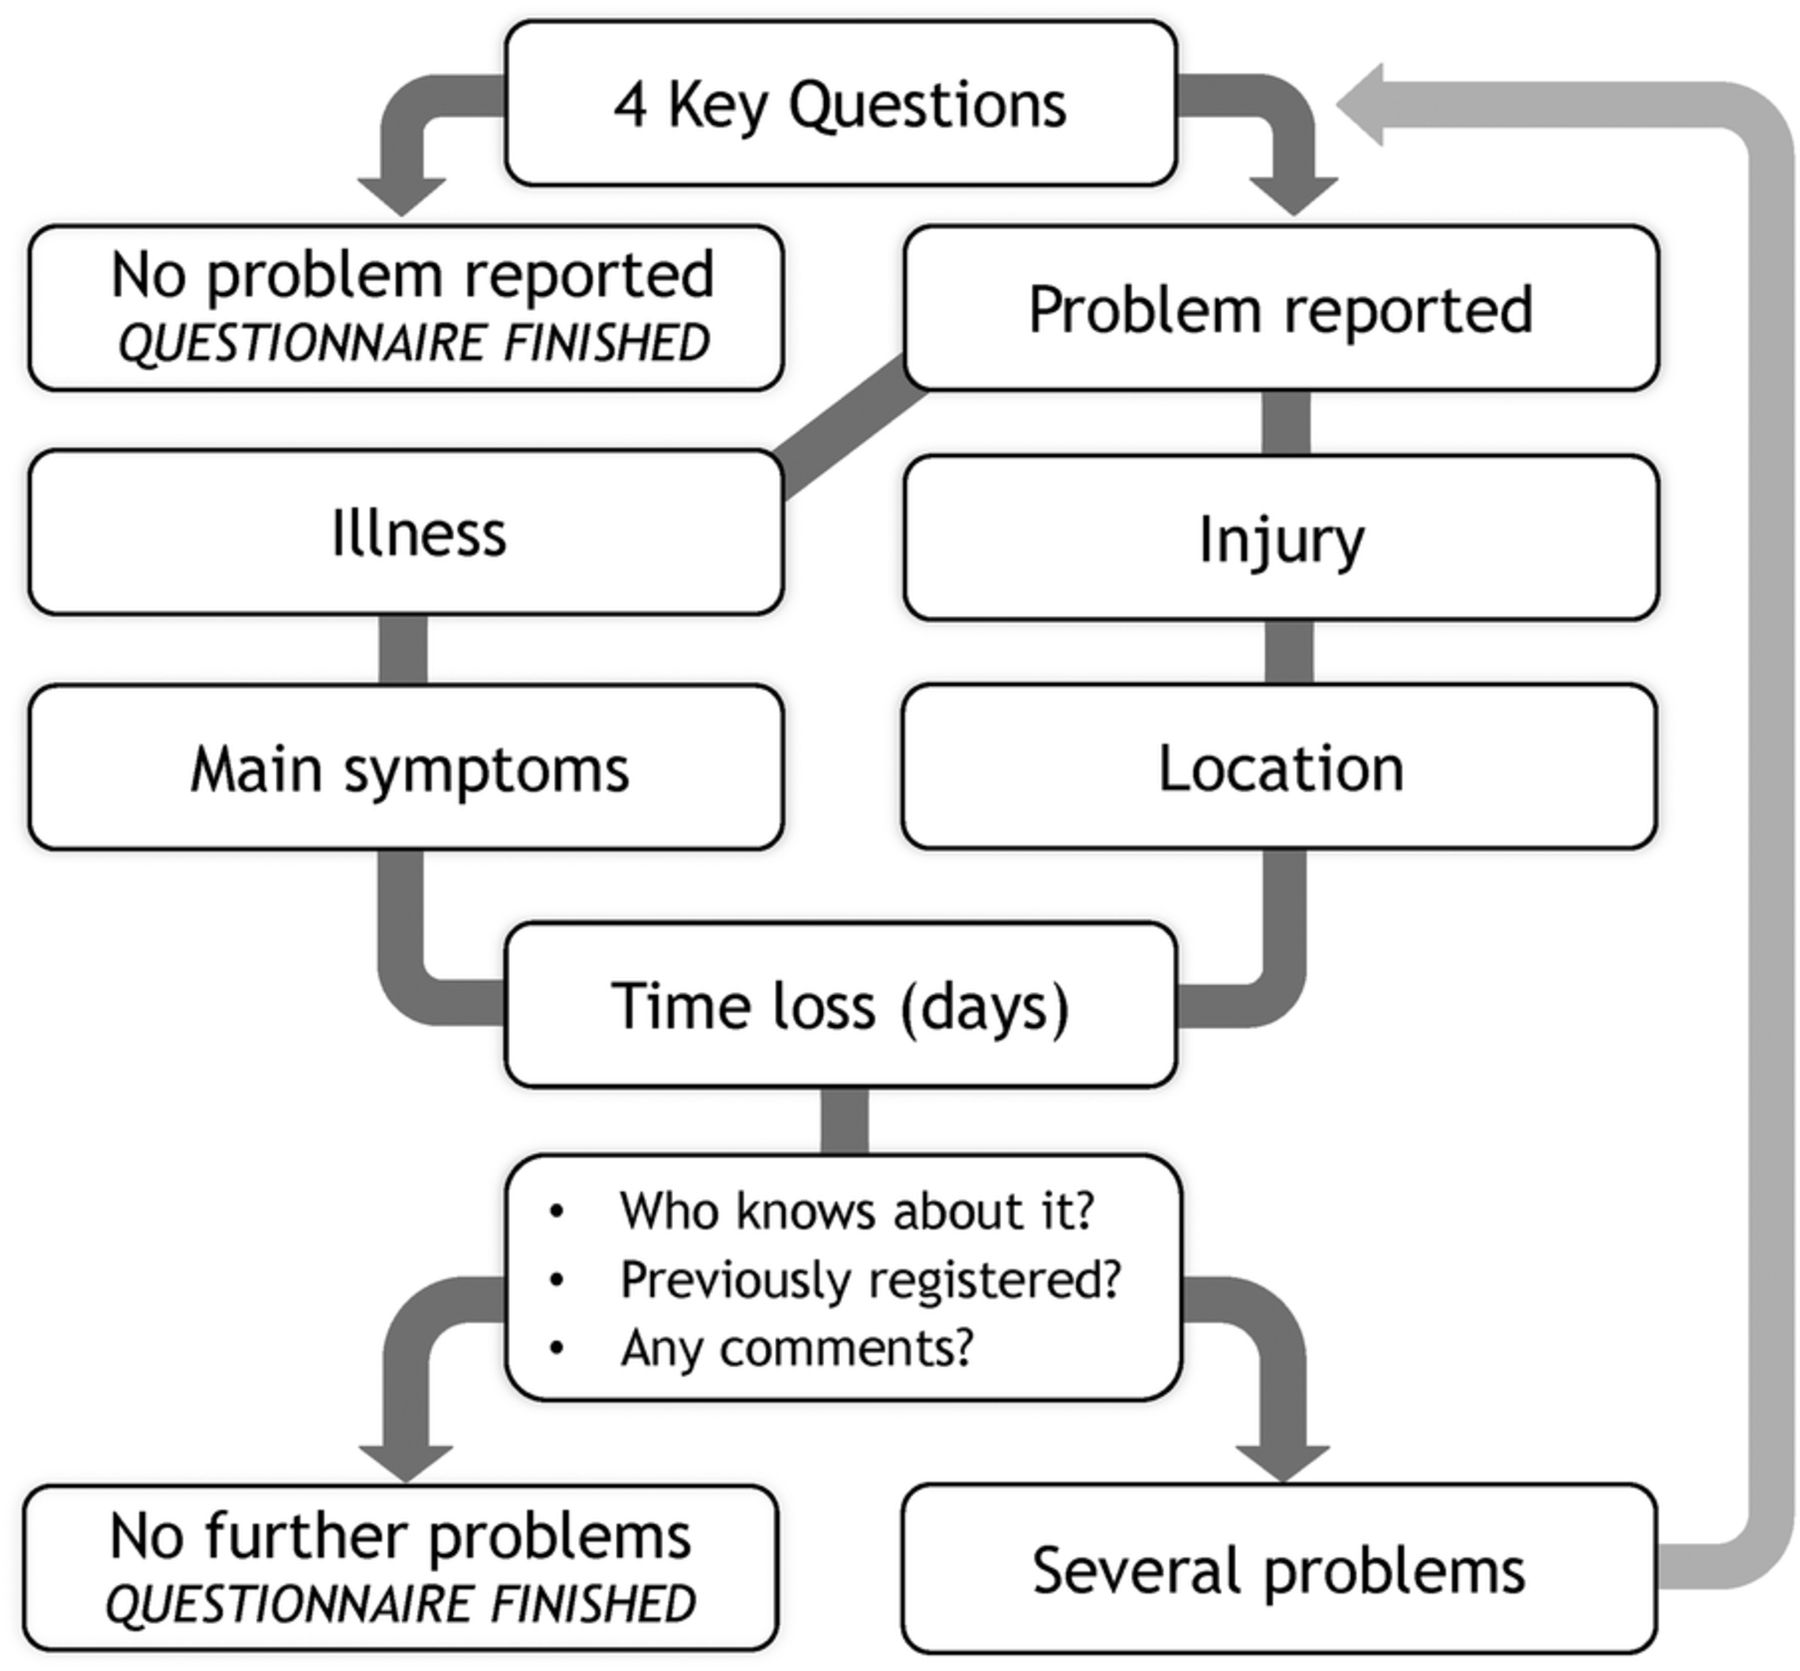 The Oslo Sports Trauma Research Center Questionnaire On Health Logic Diagram In Powerpoint Download Figure Open New Tab 3 Of